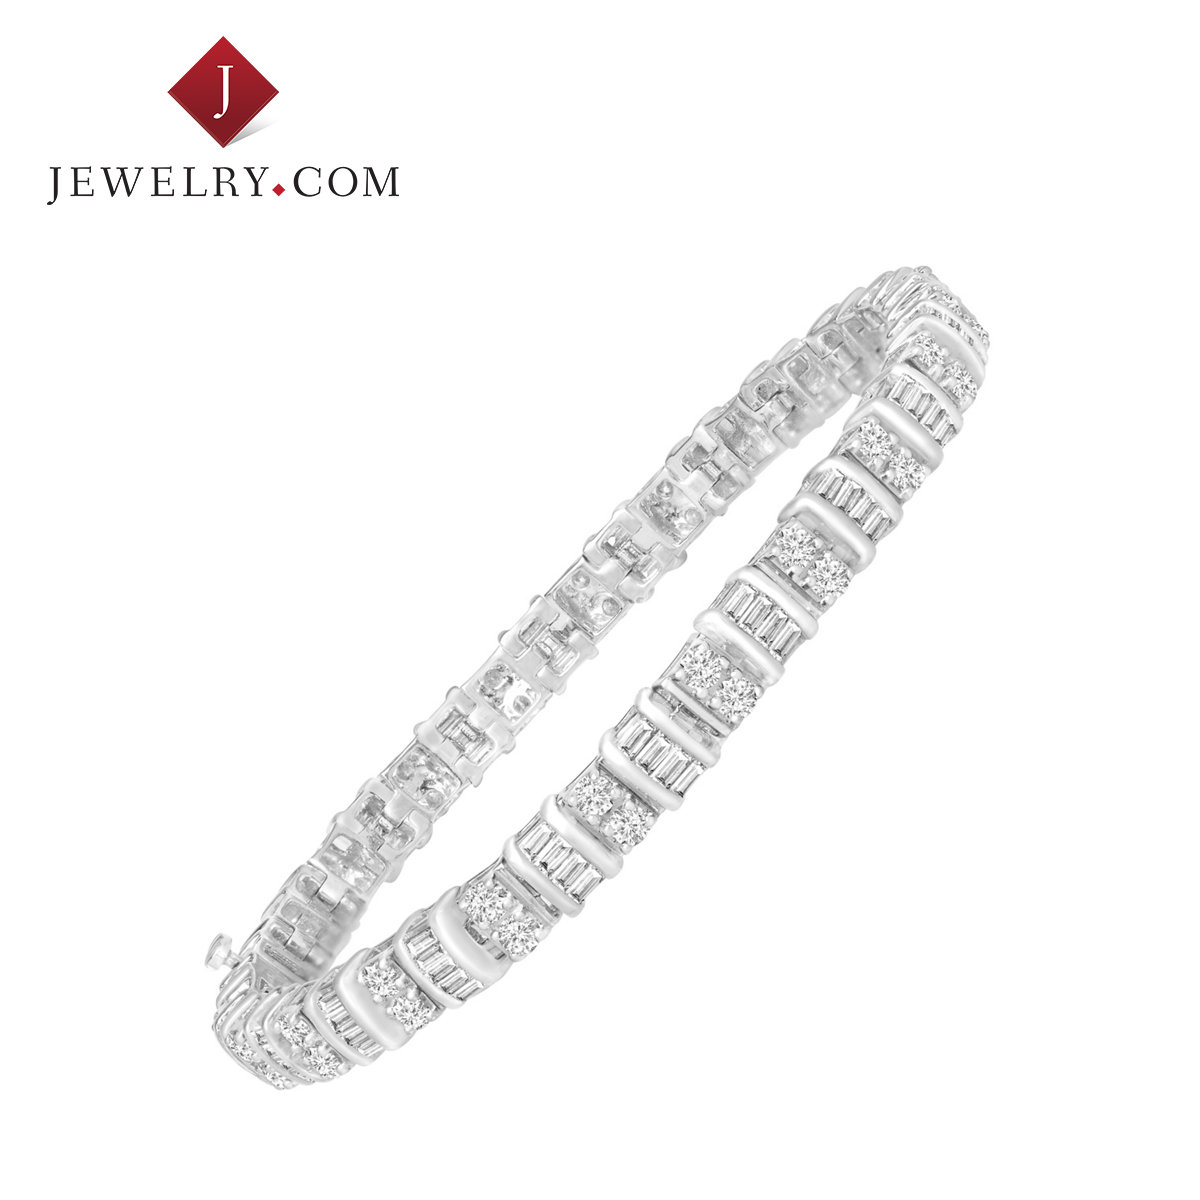 Jewelry.com official 3 karat k white gold inlay diamond luxury dignified atmosphere female models bracelet jewelry